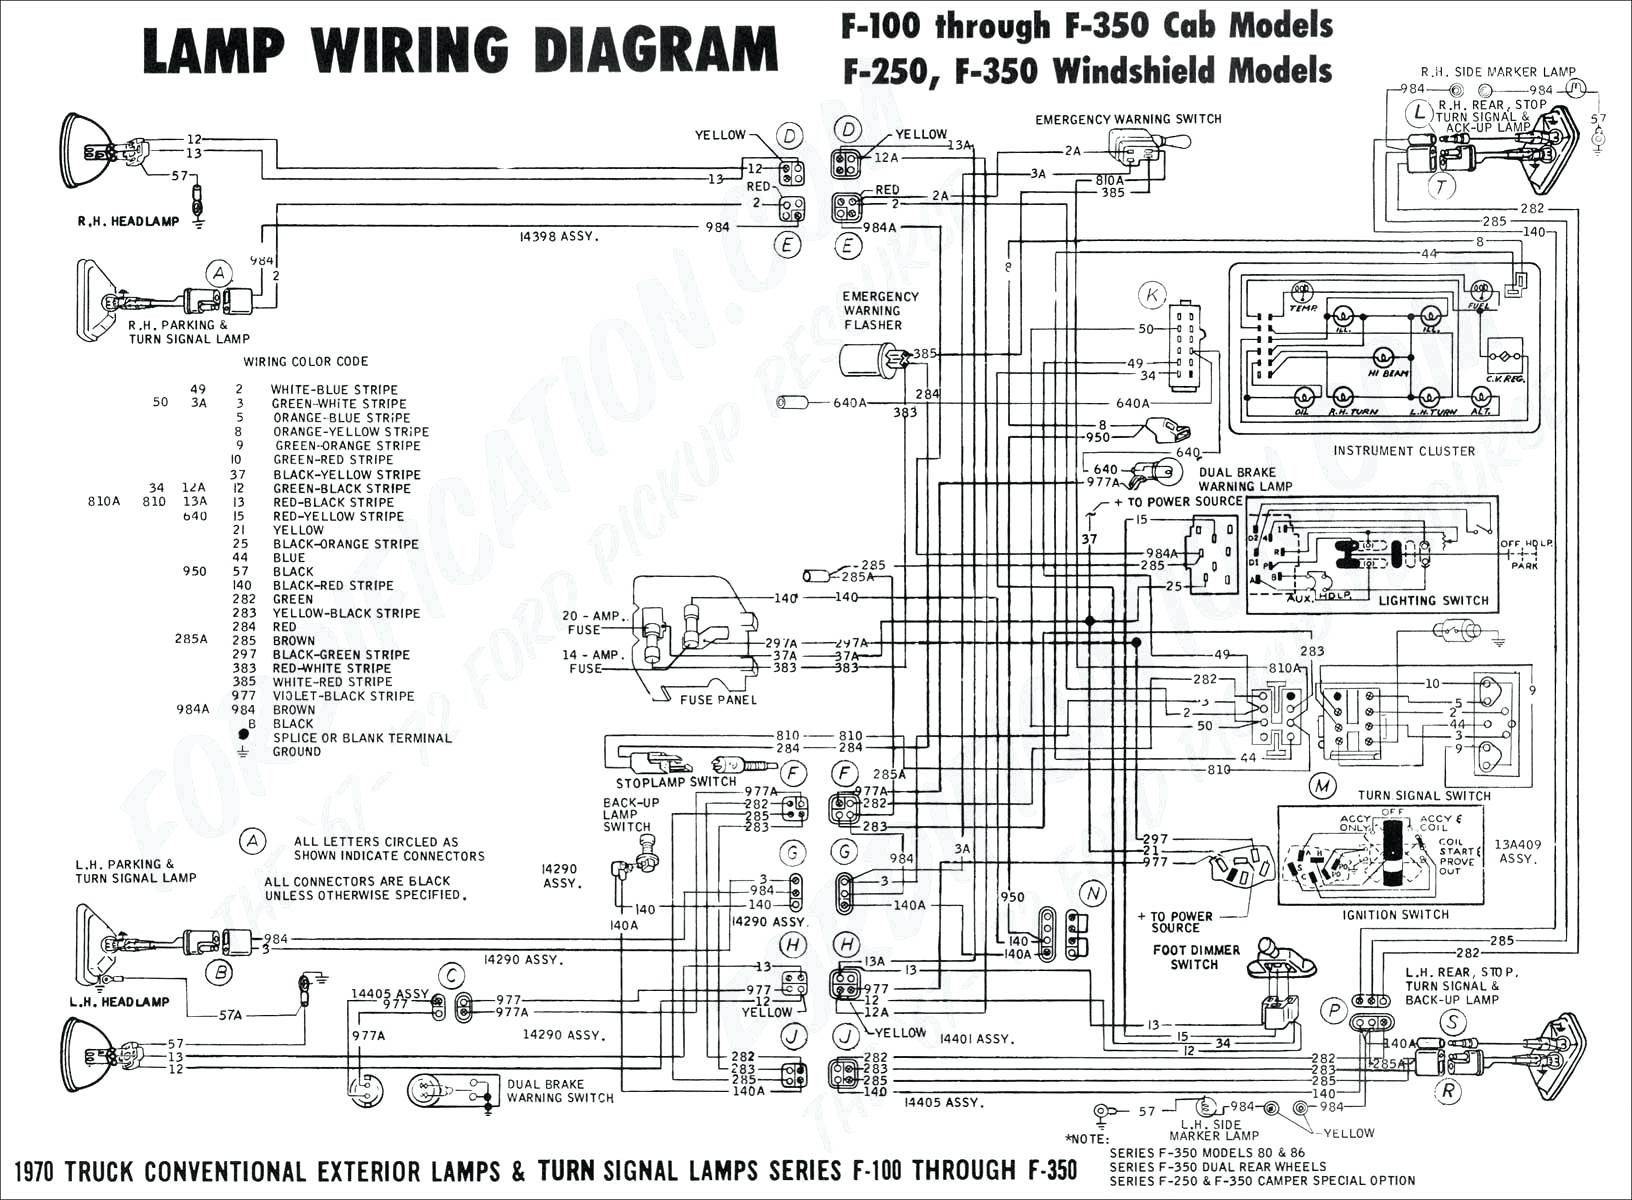 2000 ford contour wiring diagram wiring diagram data rh 6 2 4 reisen fuer meister de